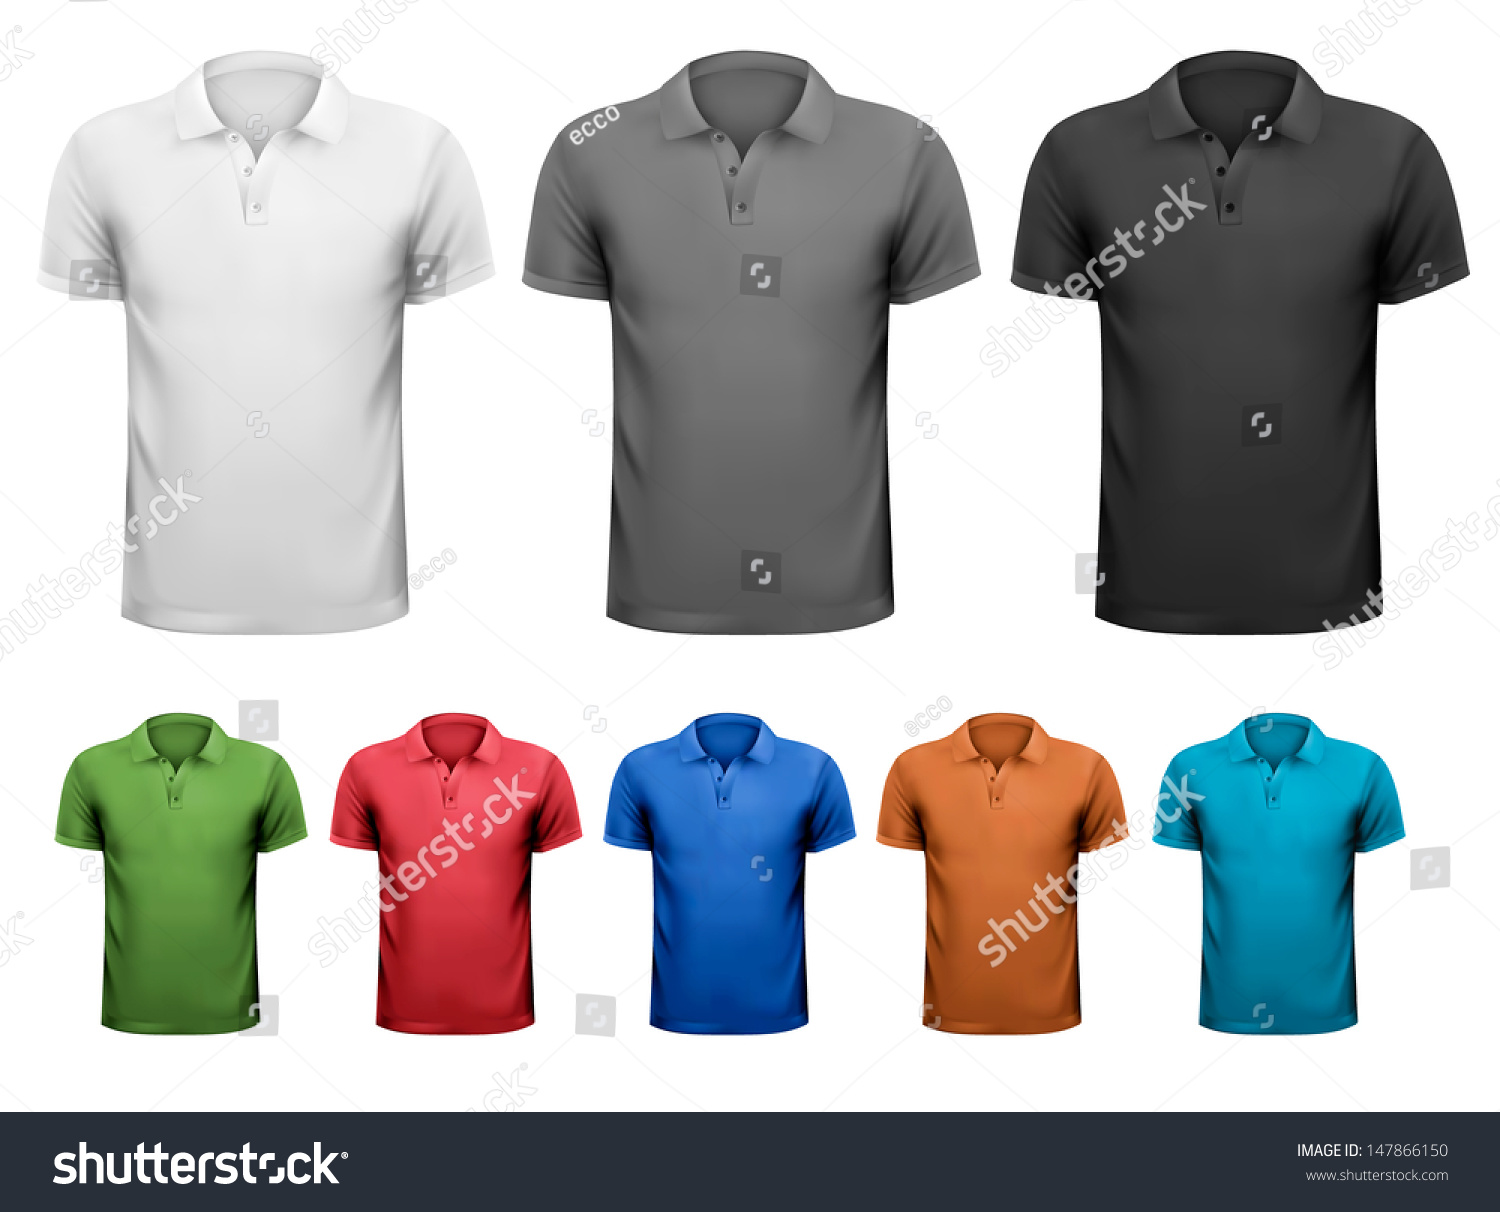 005a4a21 Black and white and color men t-shirts. Design template. Vector illustration